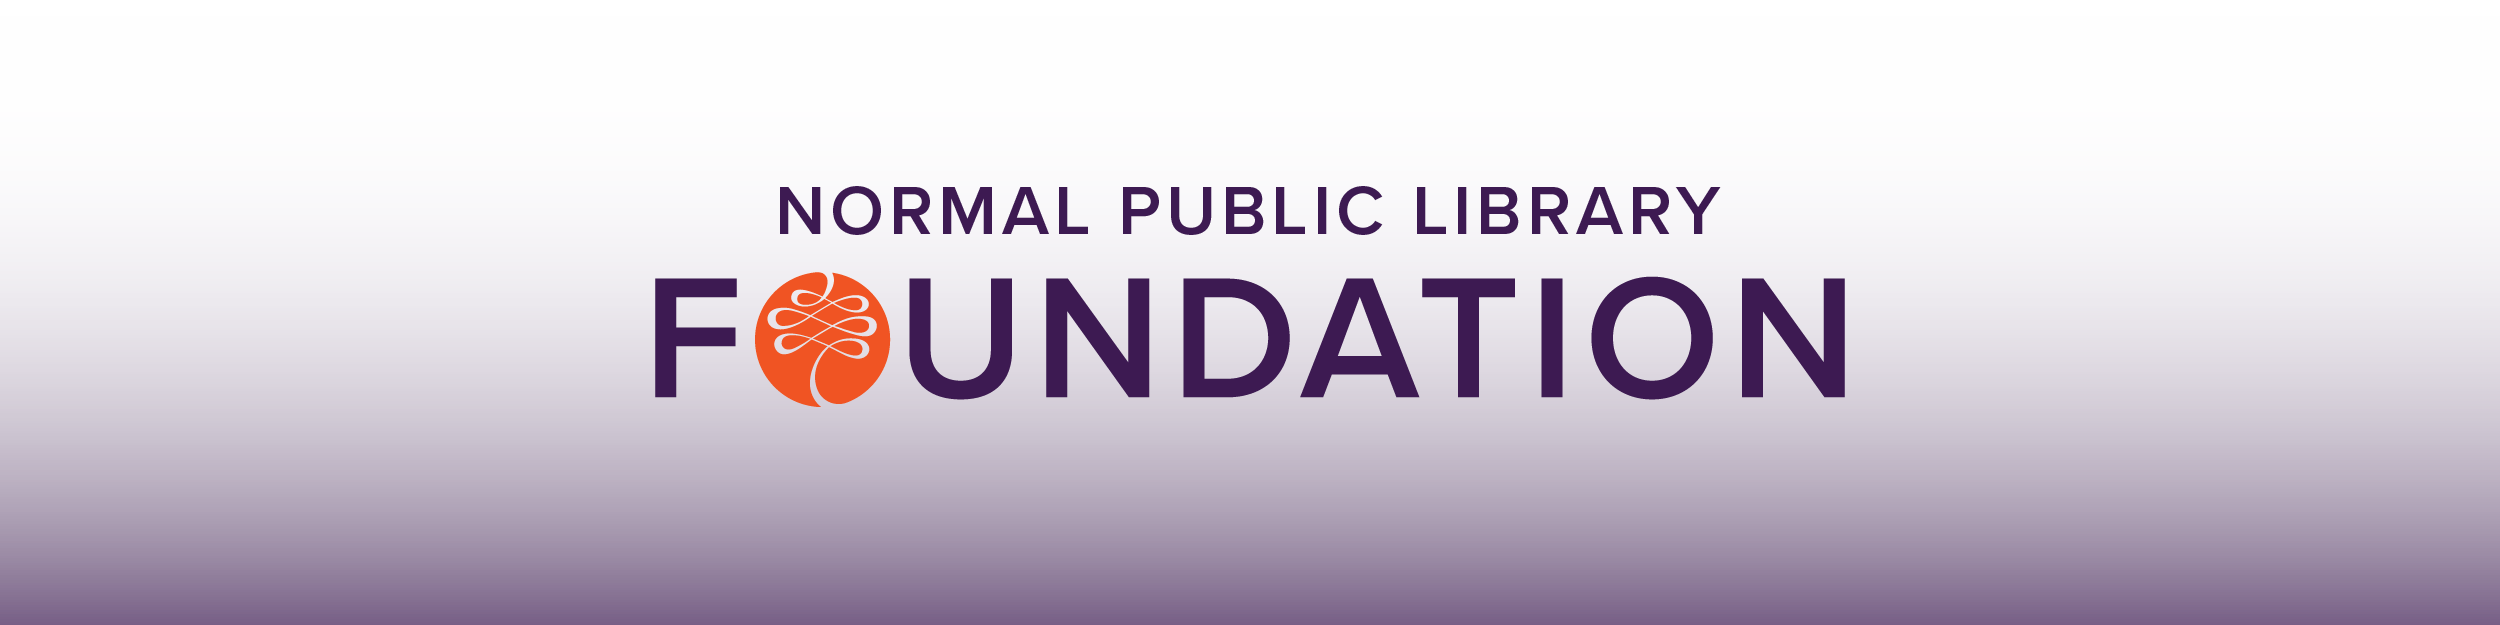 Normal Public Library Foundation Logo